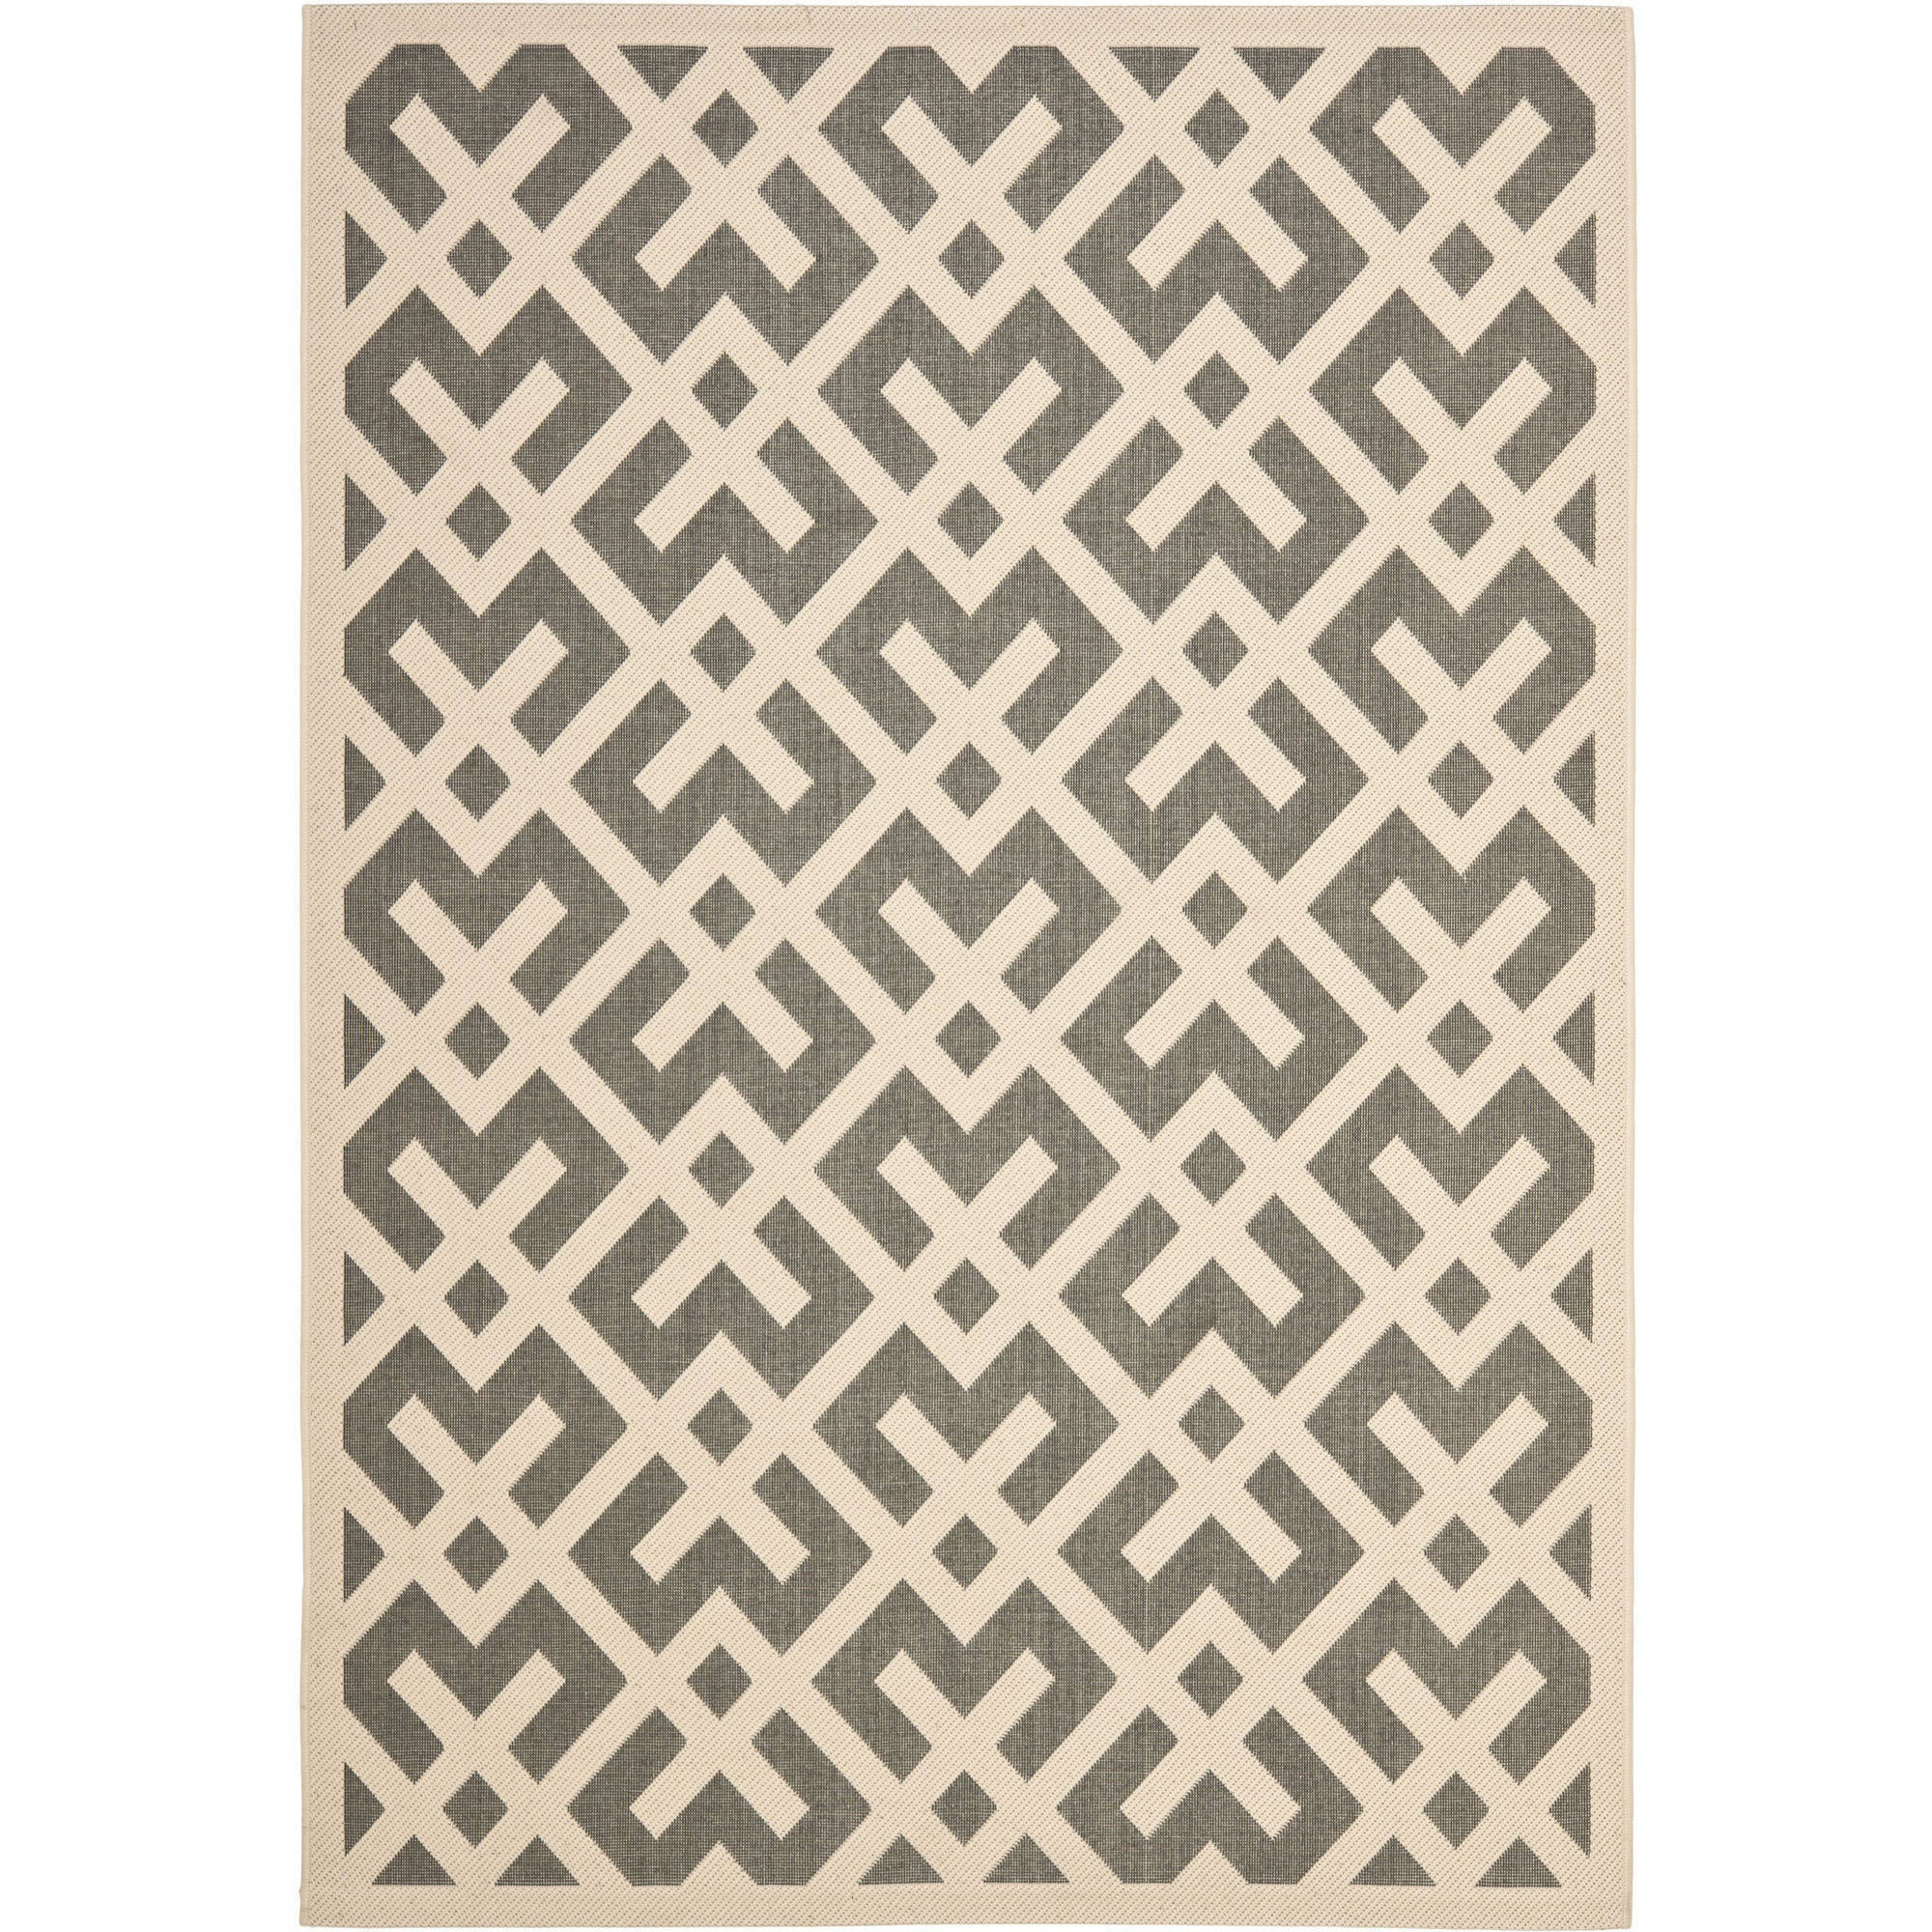 Safavieh Courtyard Alvin Power-Loomed Indoor/Outdoor Area Rug or Runner